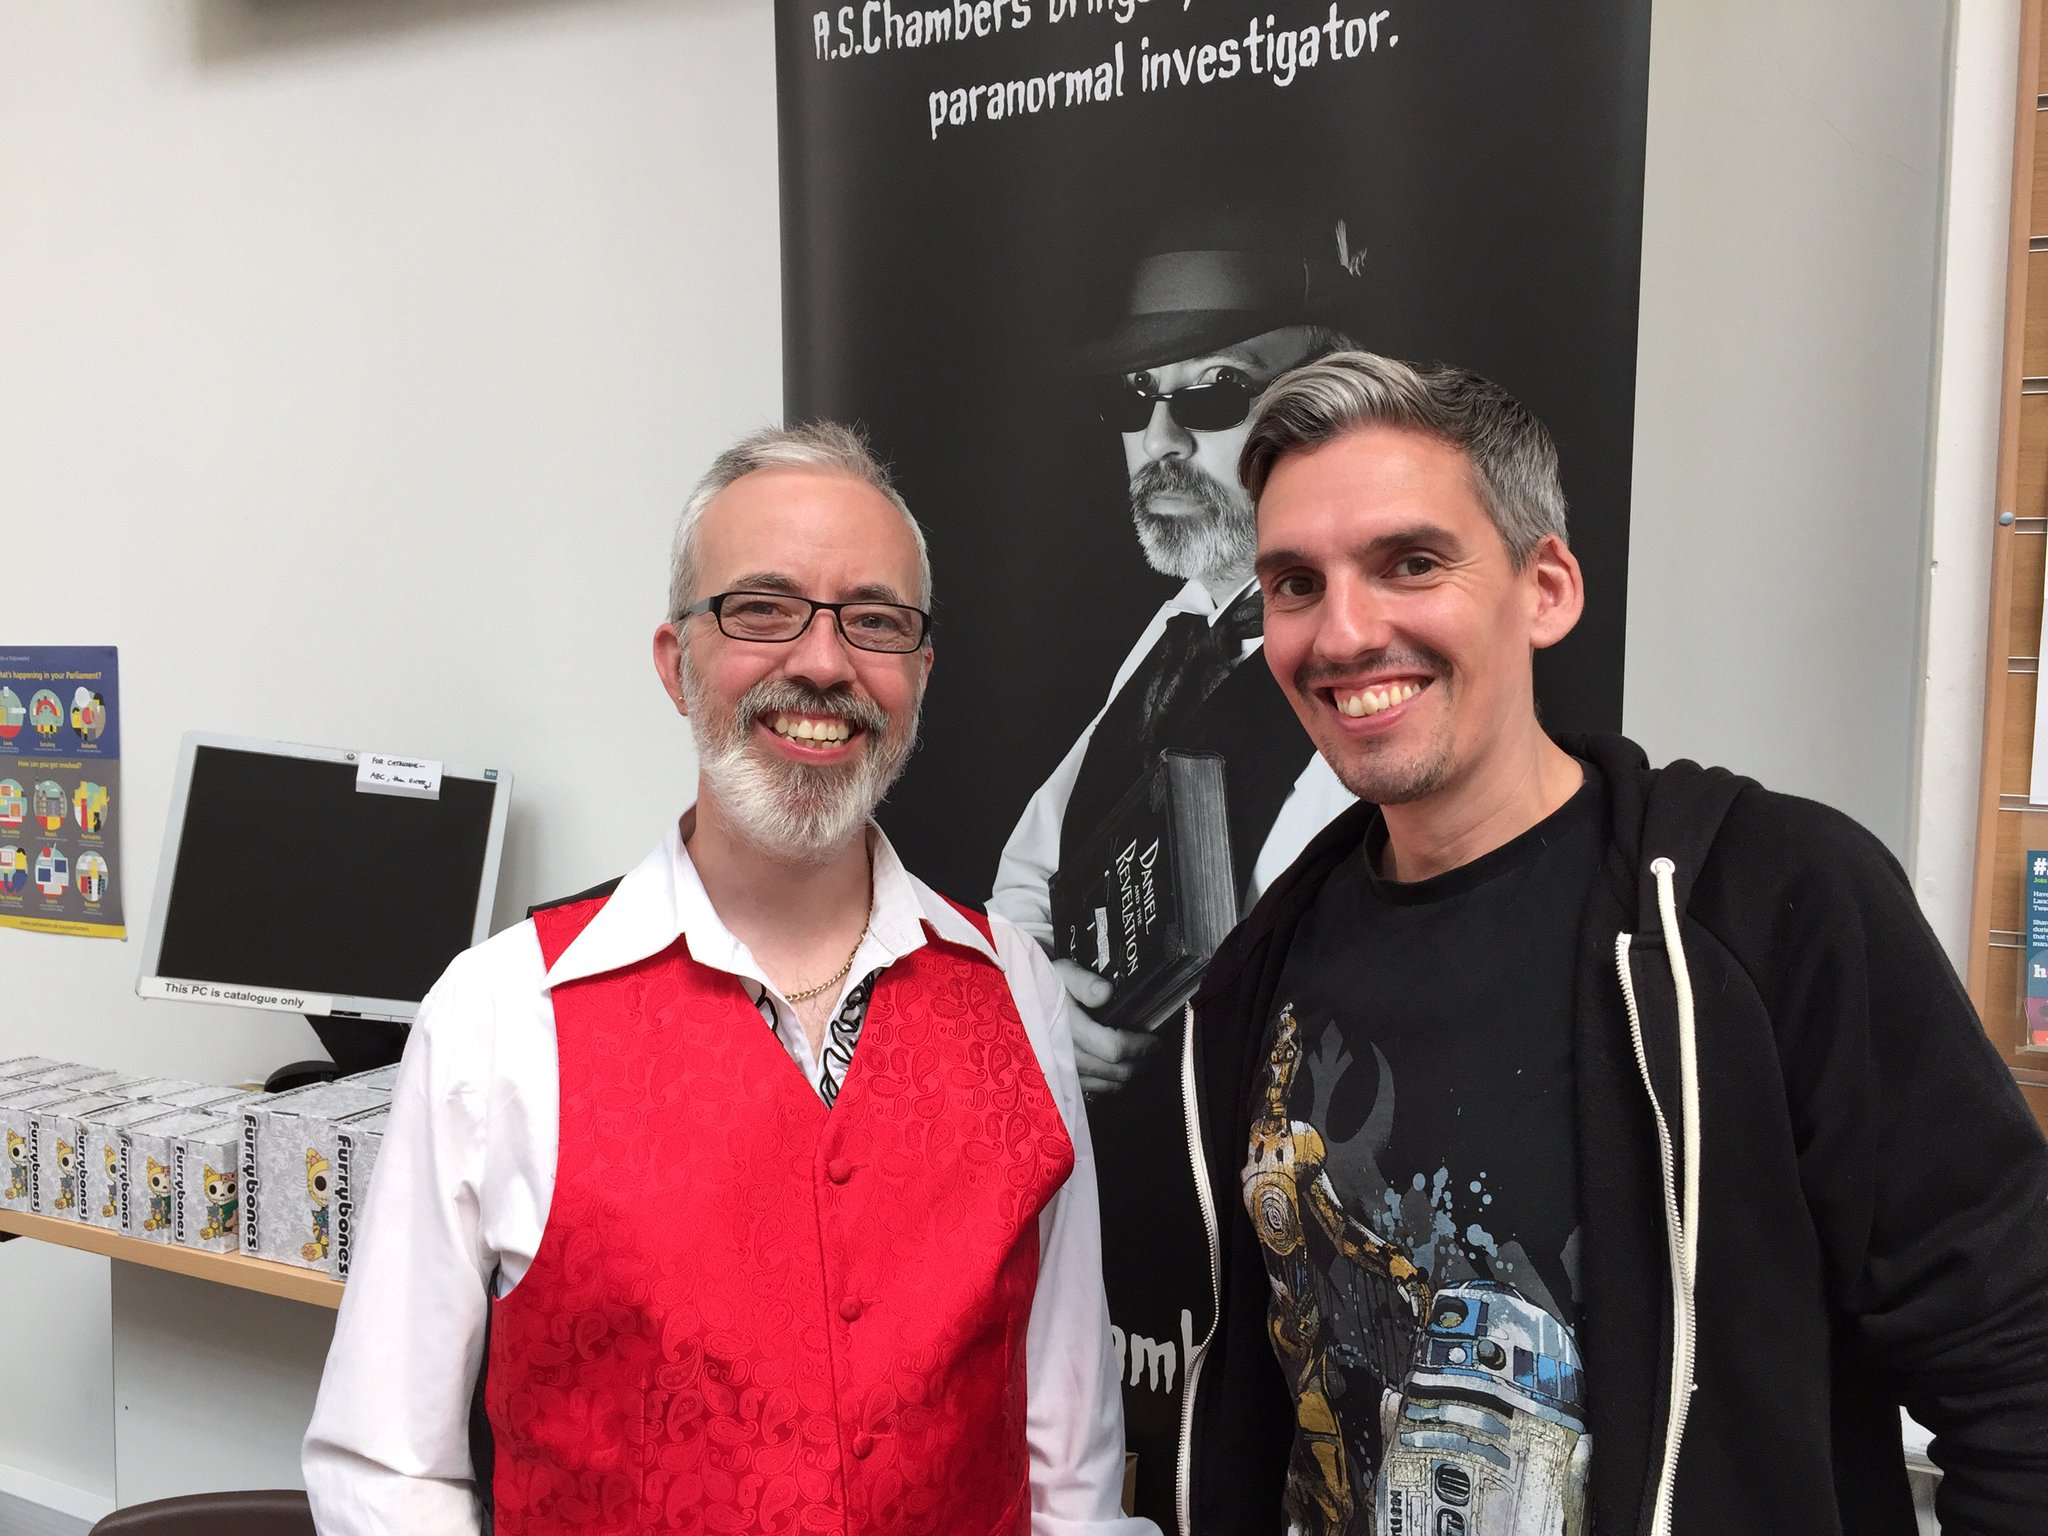 Local author @ASChambersUK  & artist Wayne Ashworth @LancasterComics https://t.co/8X6sxmWSQQ